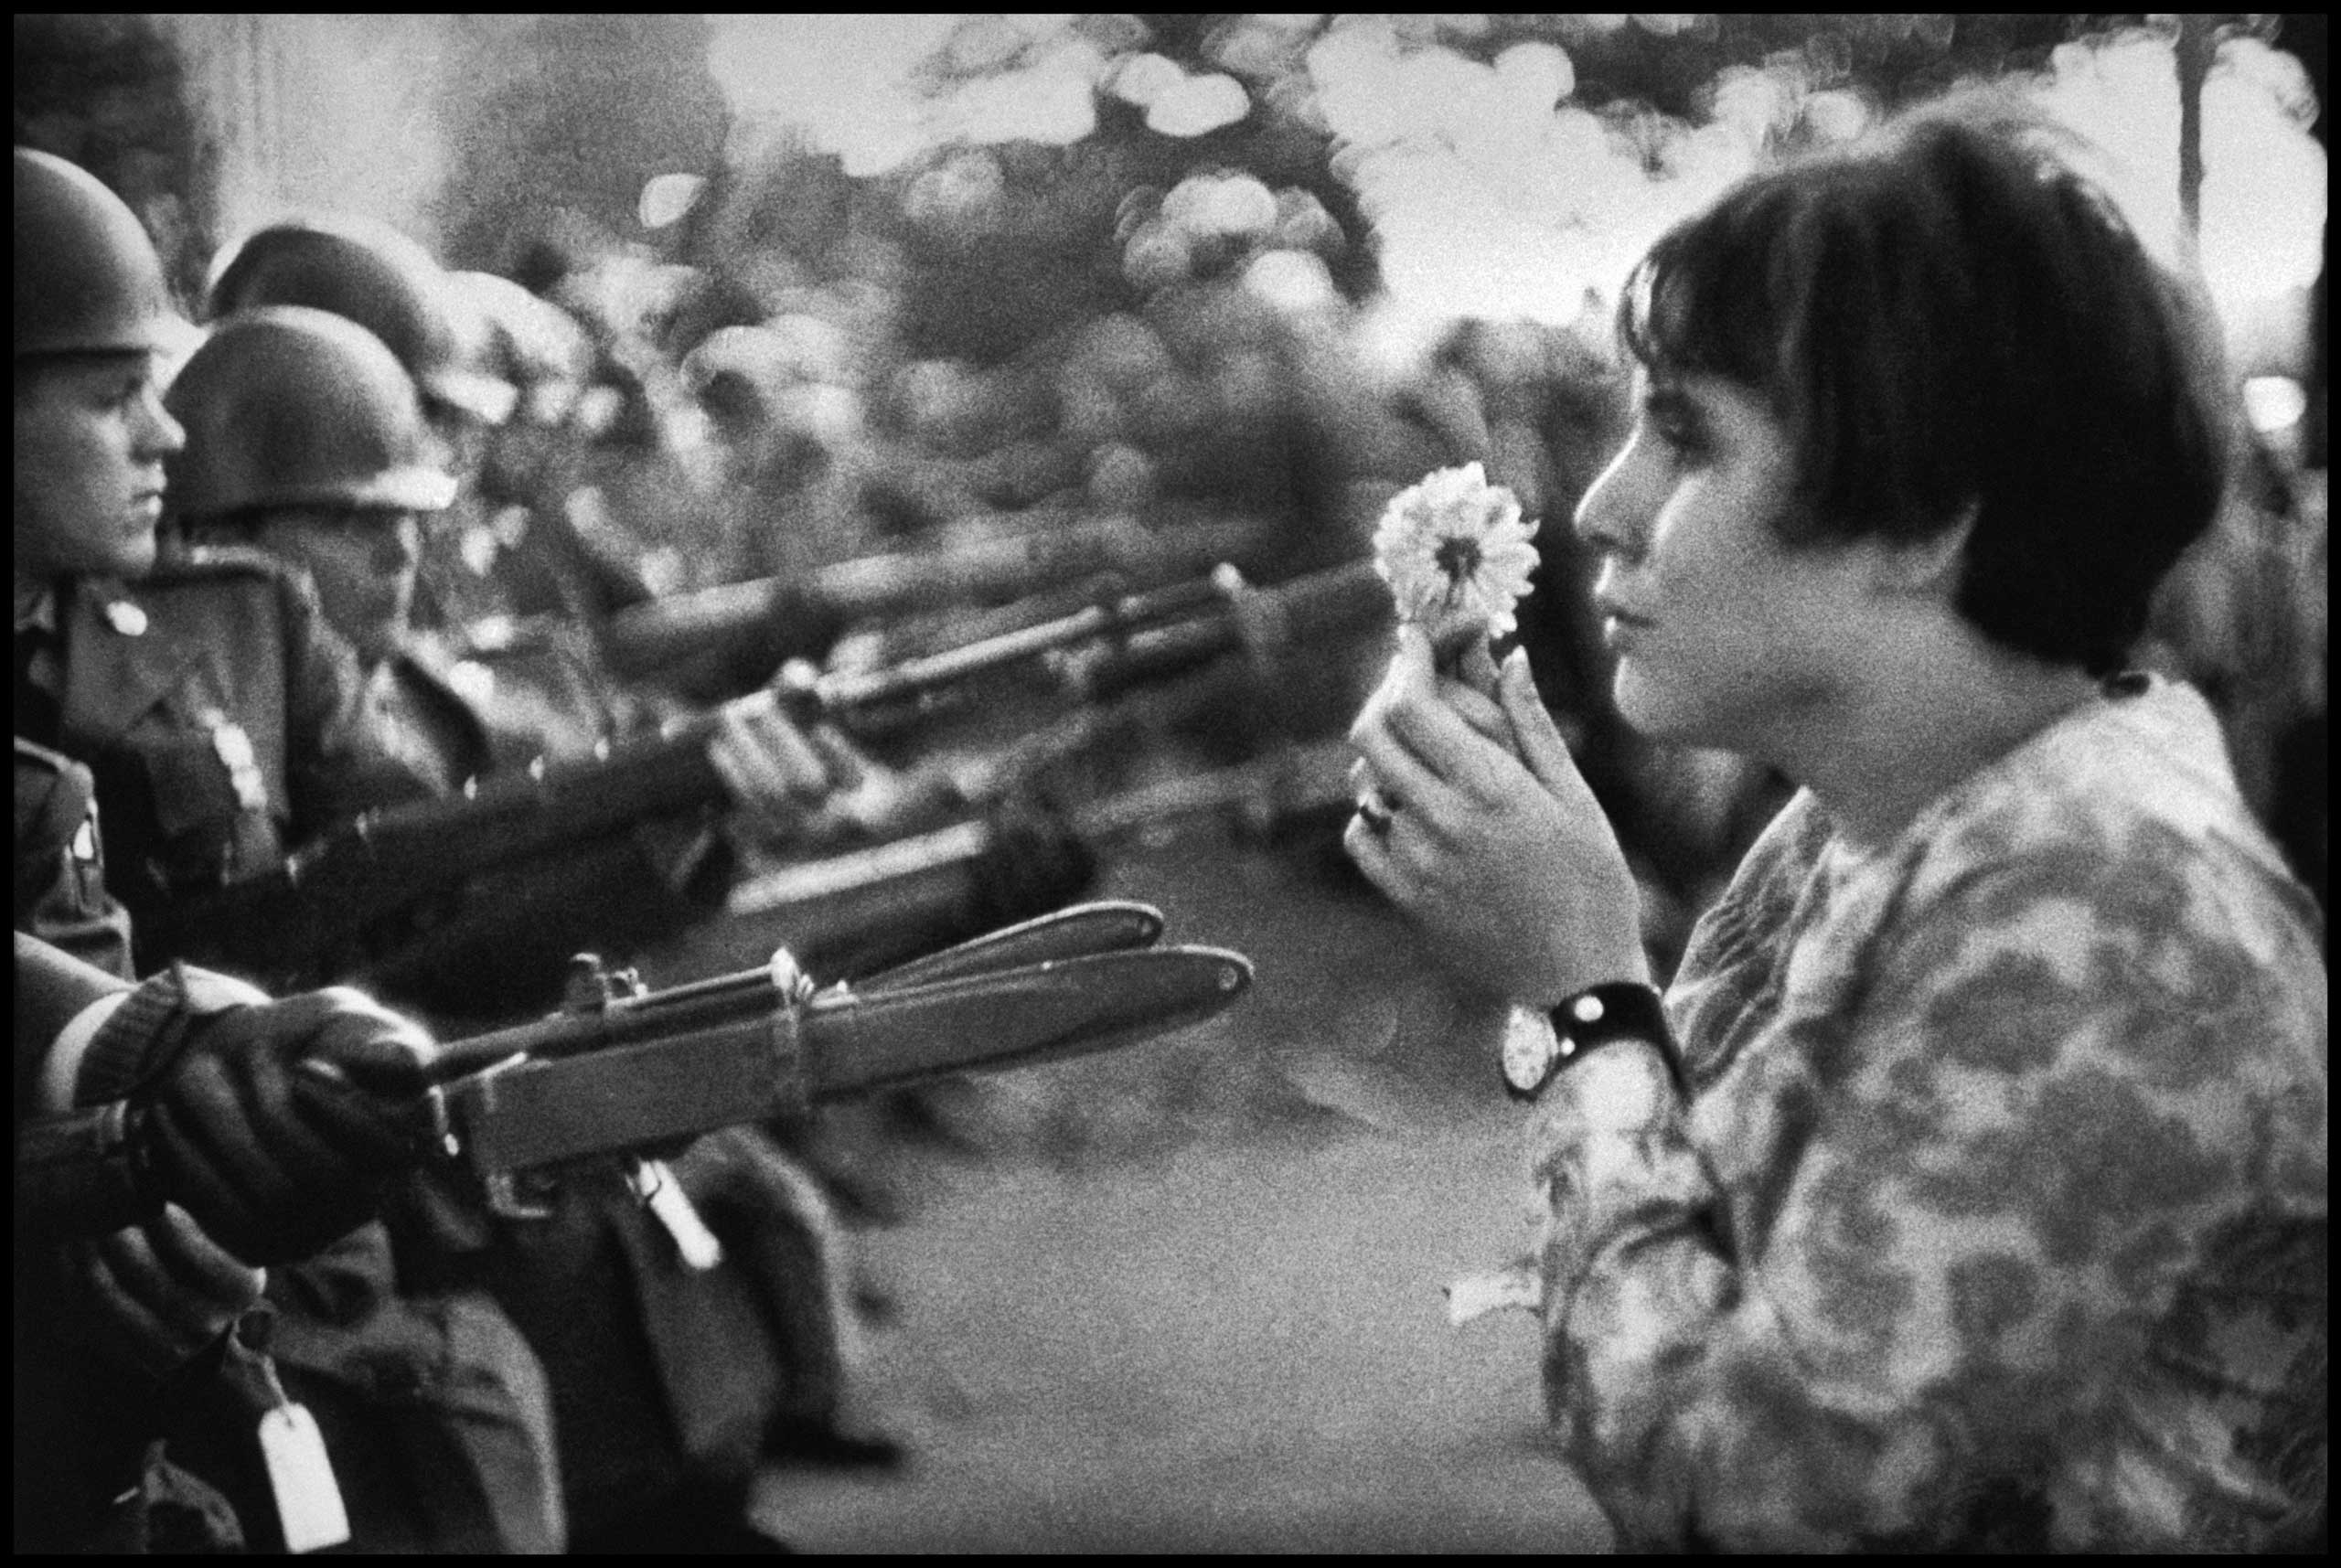 Jan Rose Kasmir confronts the American National Guard outside the Pentagon in Washington during the 1967 anti-Vietnam march.